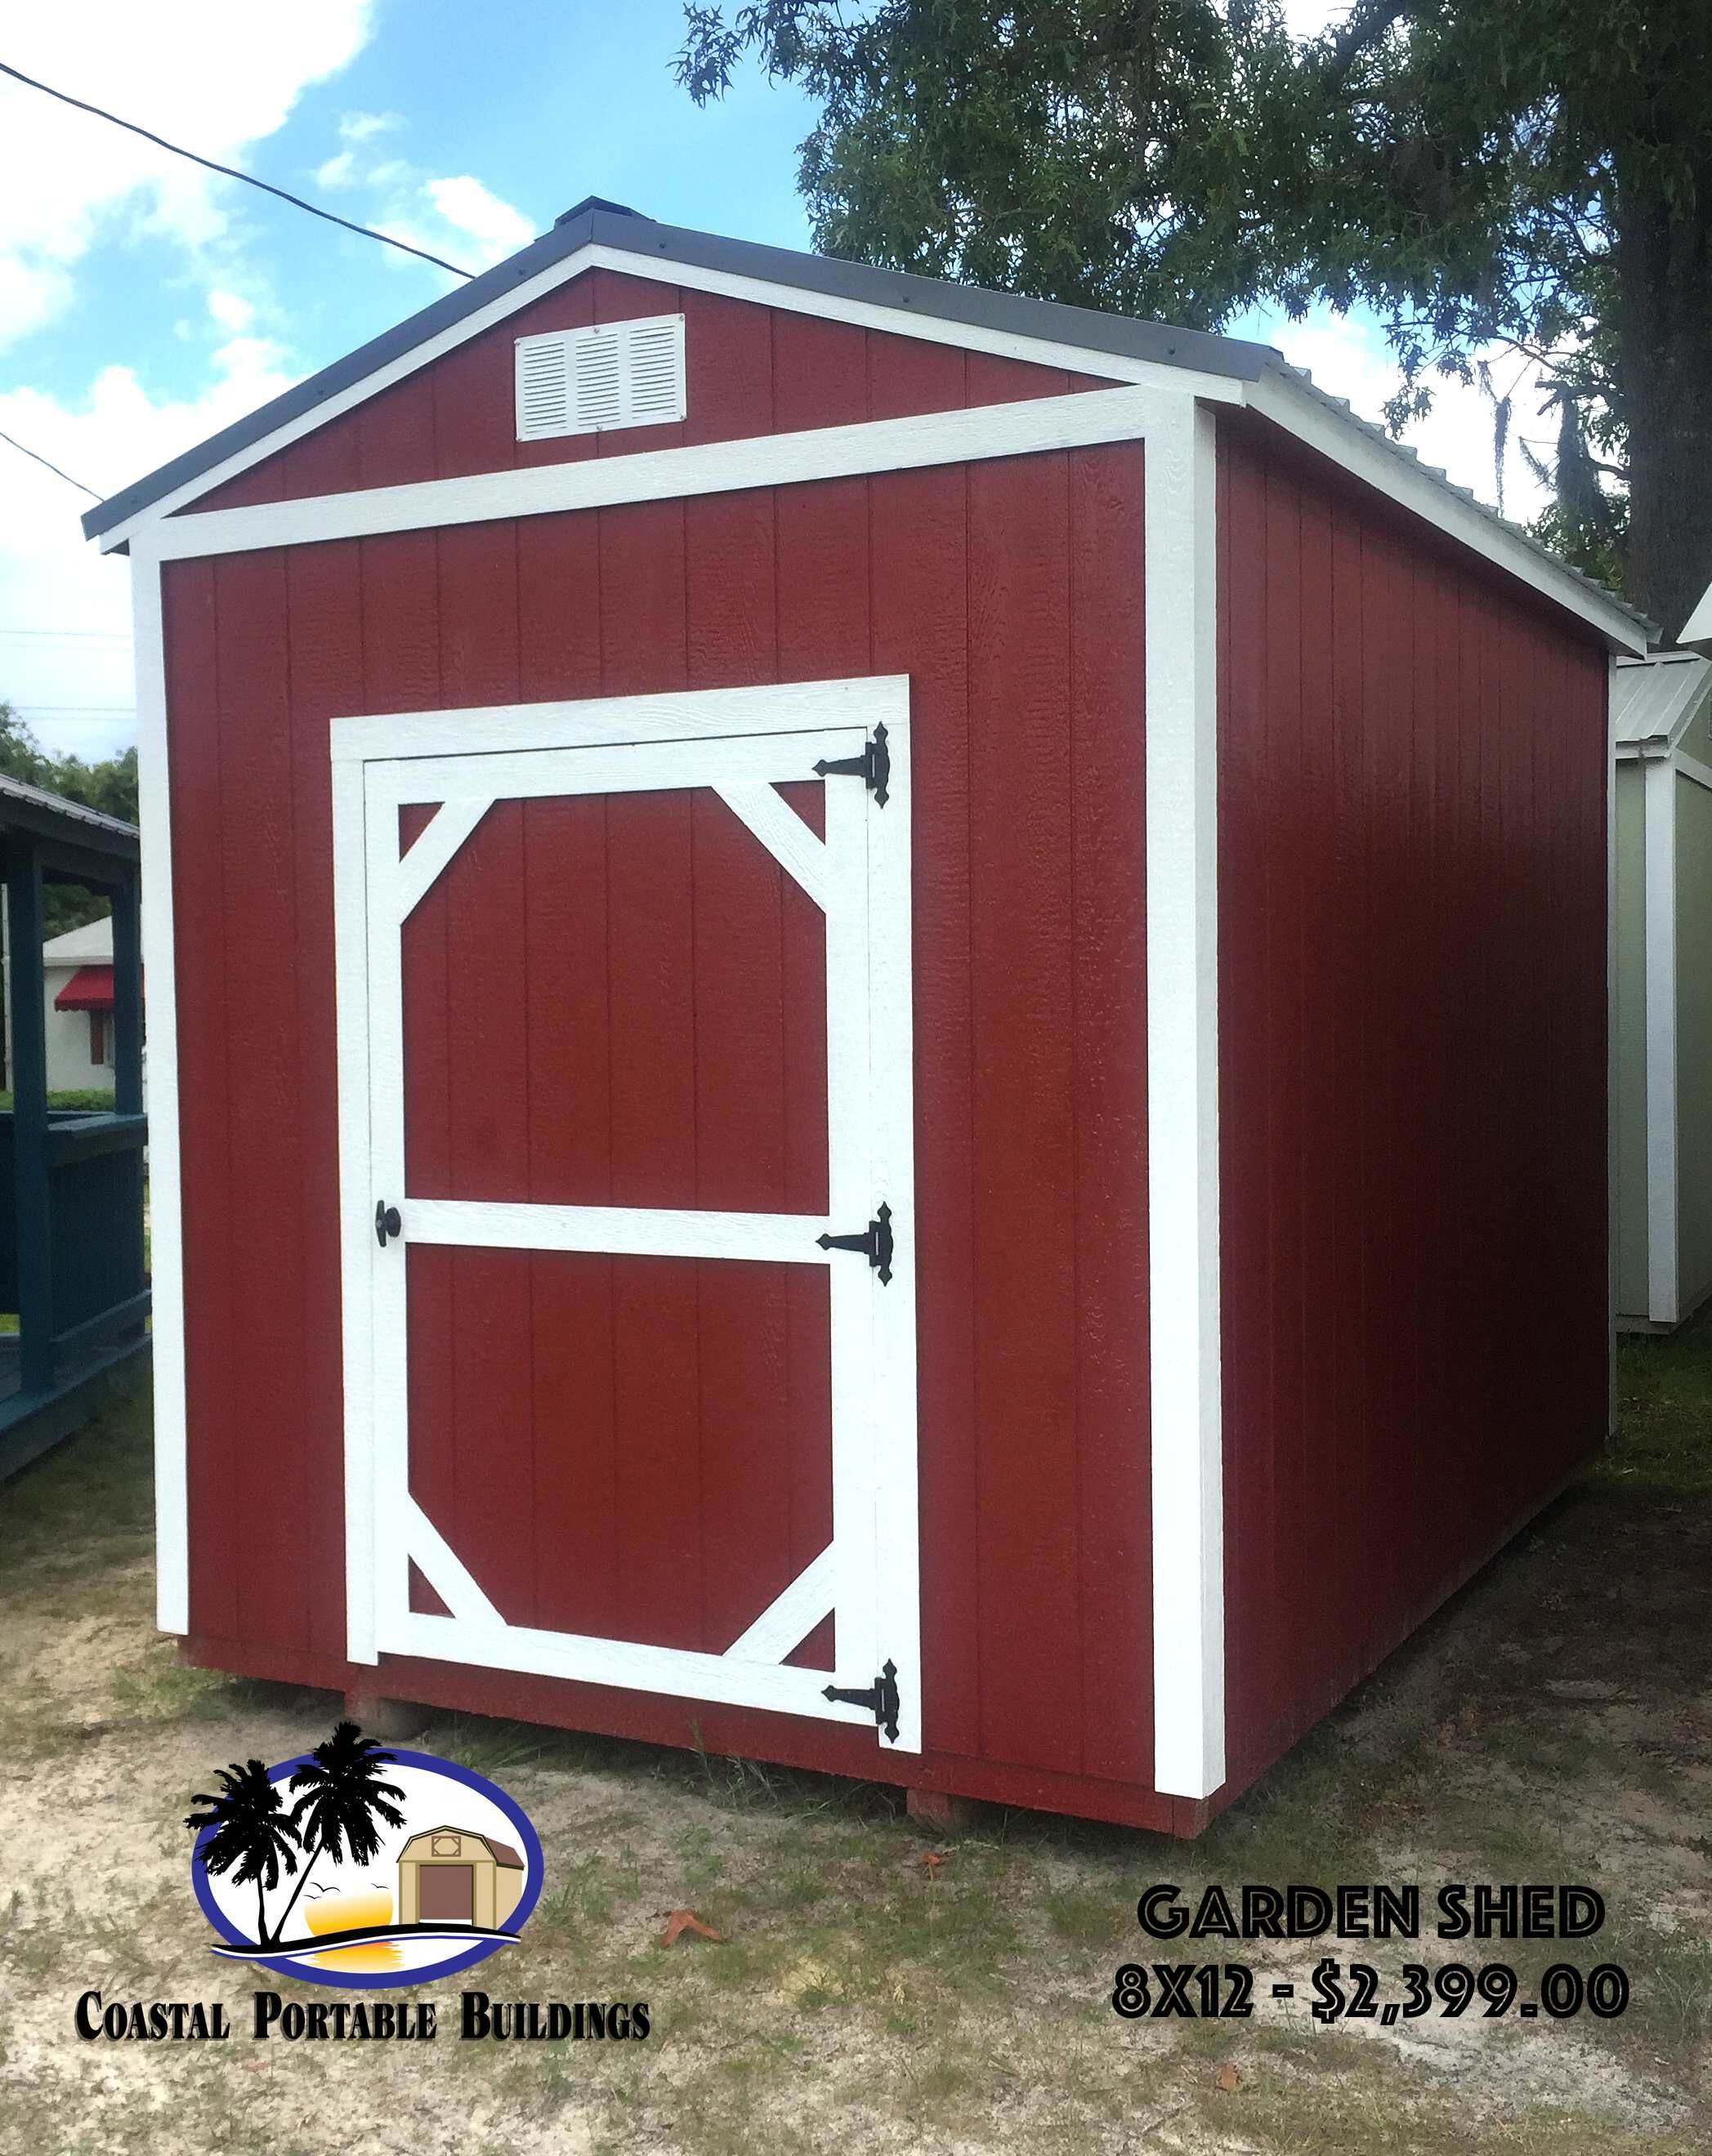 8x12 garden shed built by coastal portable buildings in starke fl toolshed - Garden Sheds Florida